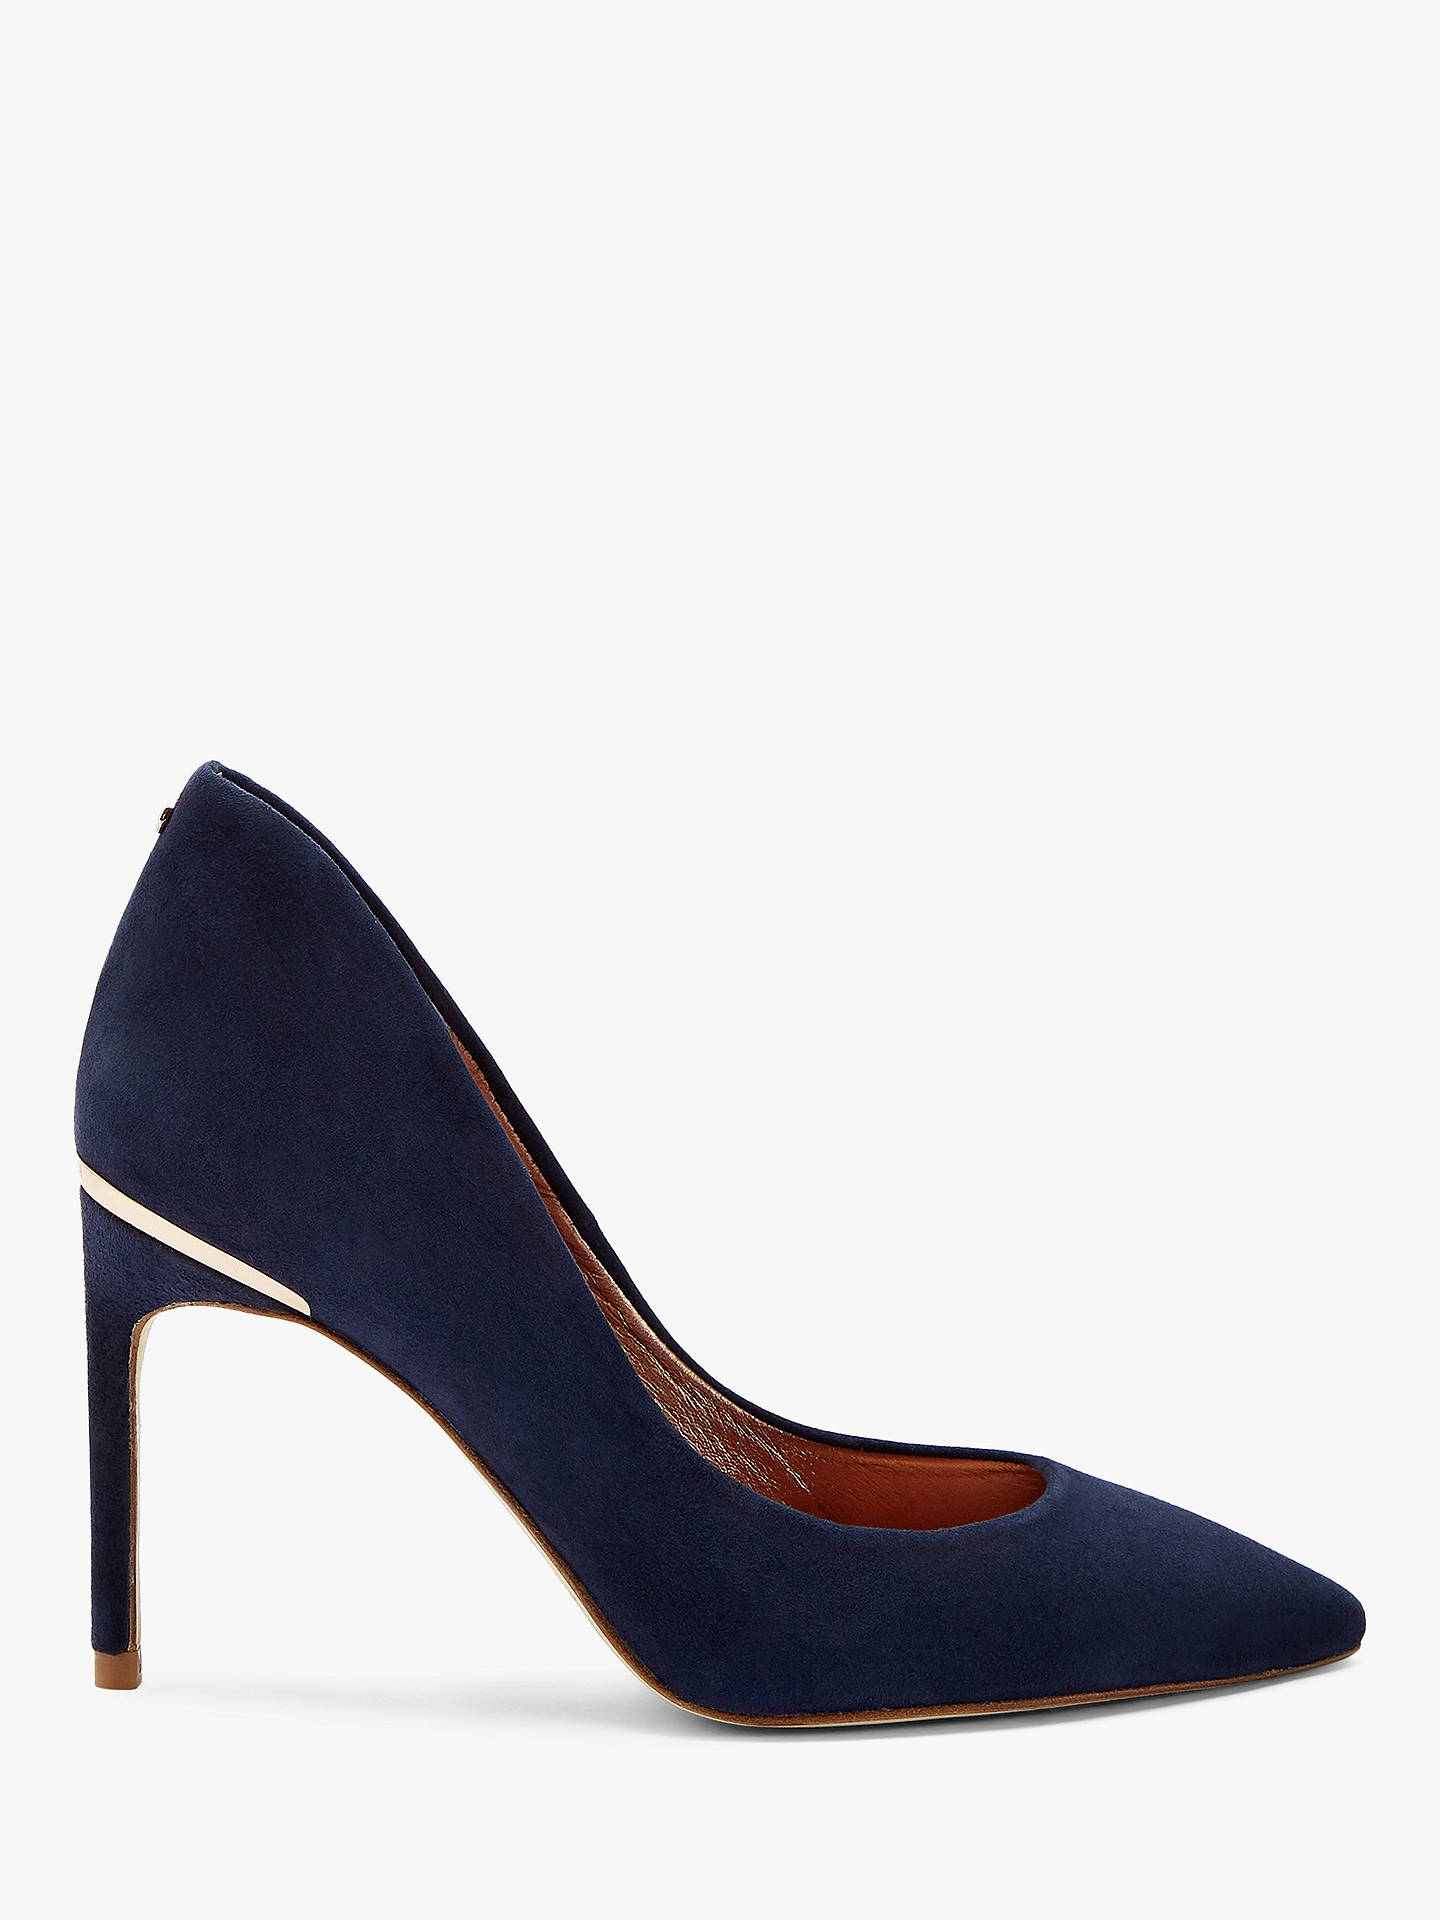 4feb96bce5a Ted Baker Savio 2 Stiletto Heeled Court Shoes at John Lewis   Partners